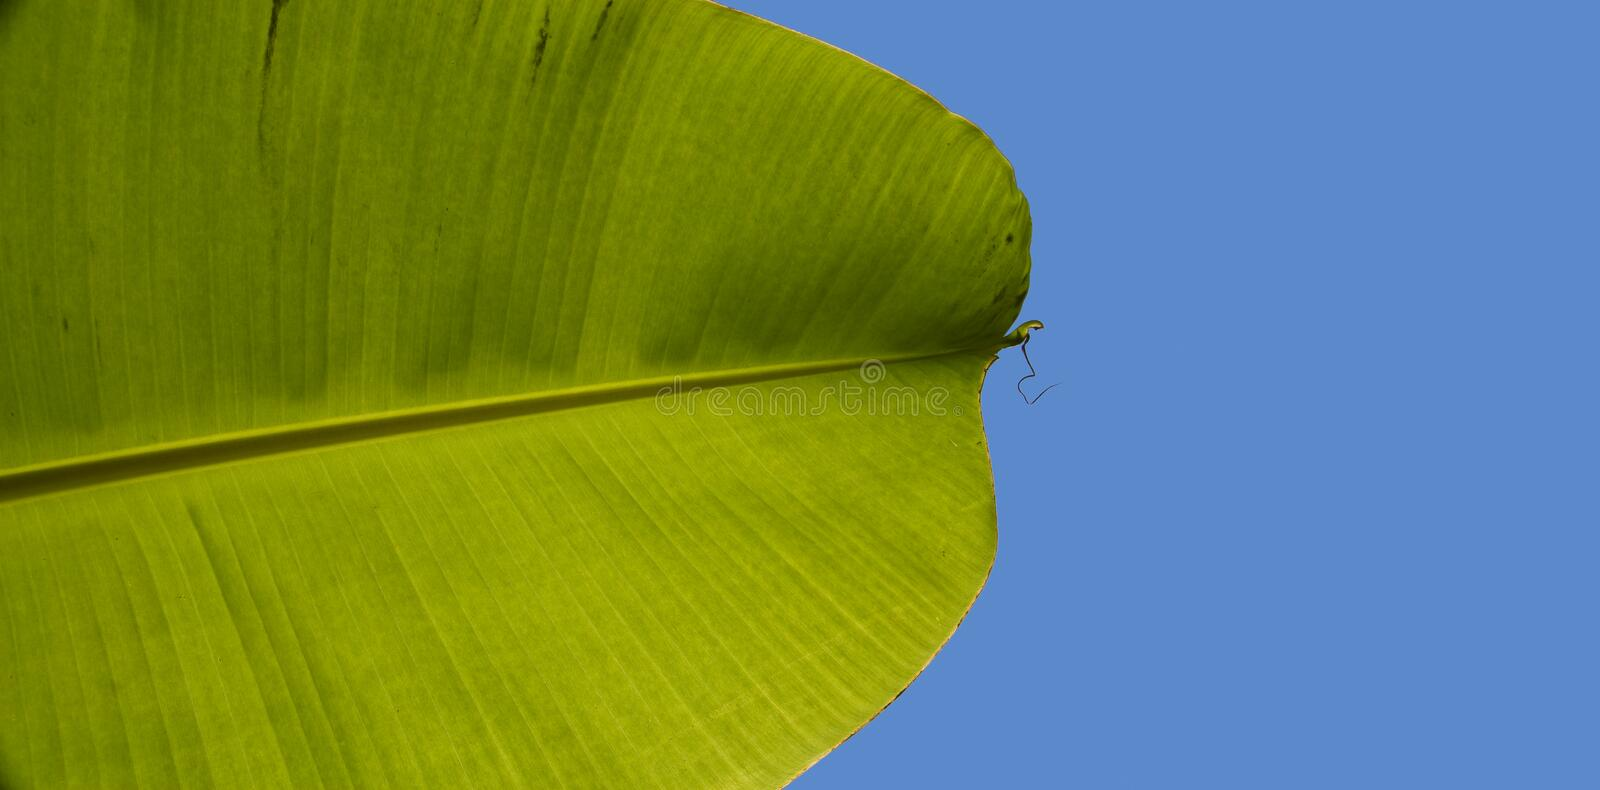 Download Banana palm leaf on blue stock photo. Image of bright - 11009740